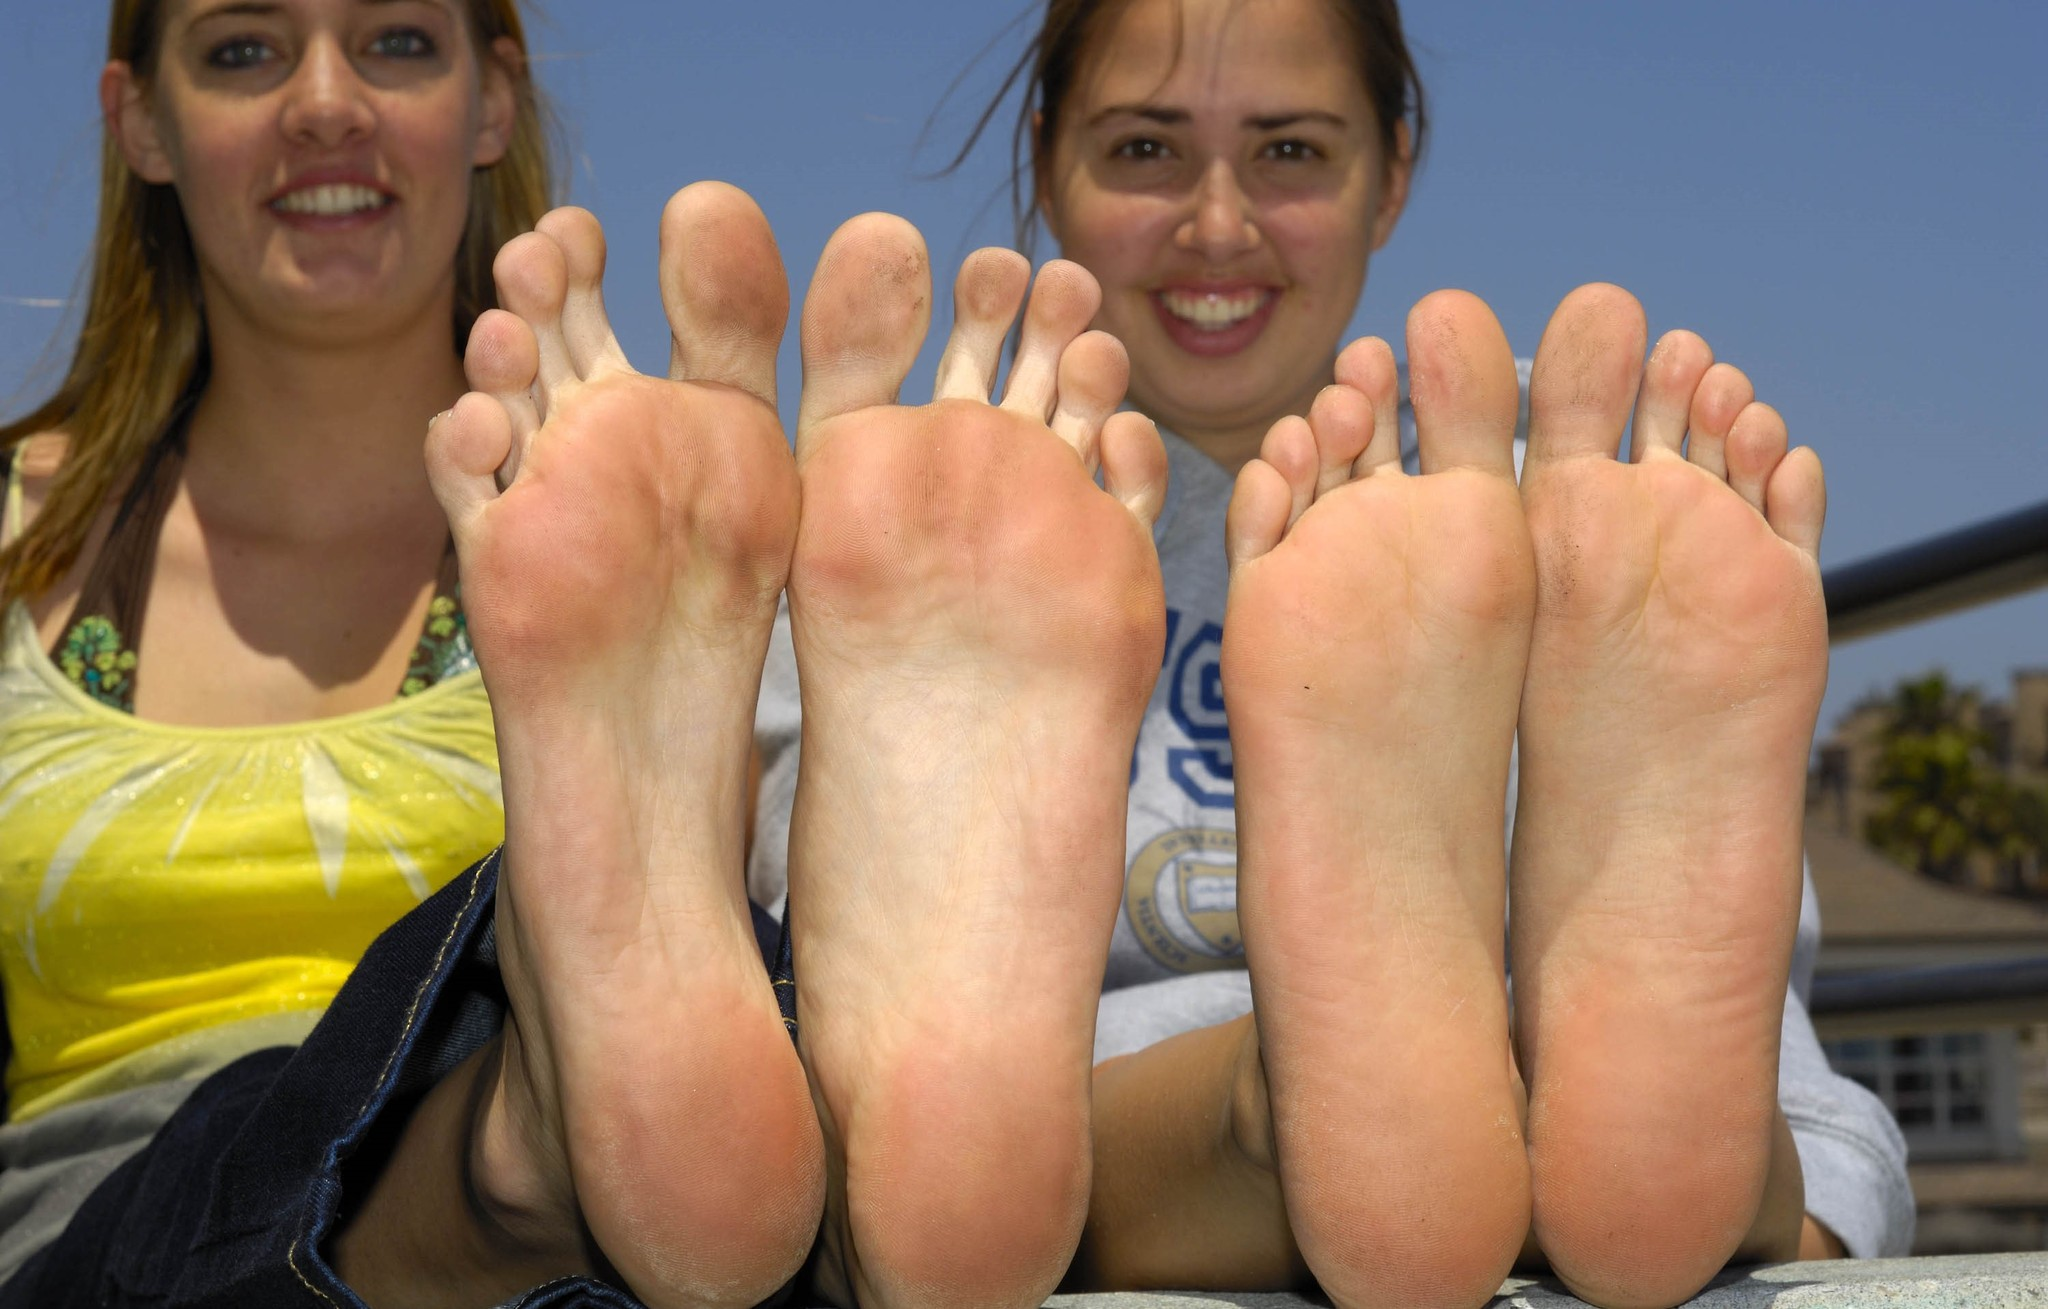 soles feet Tumblr girl